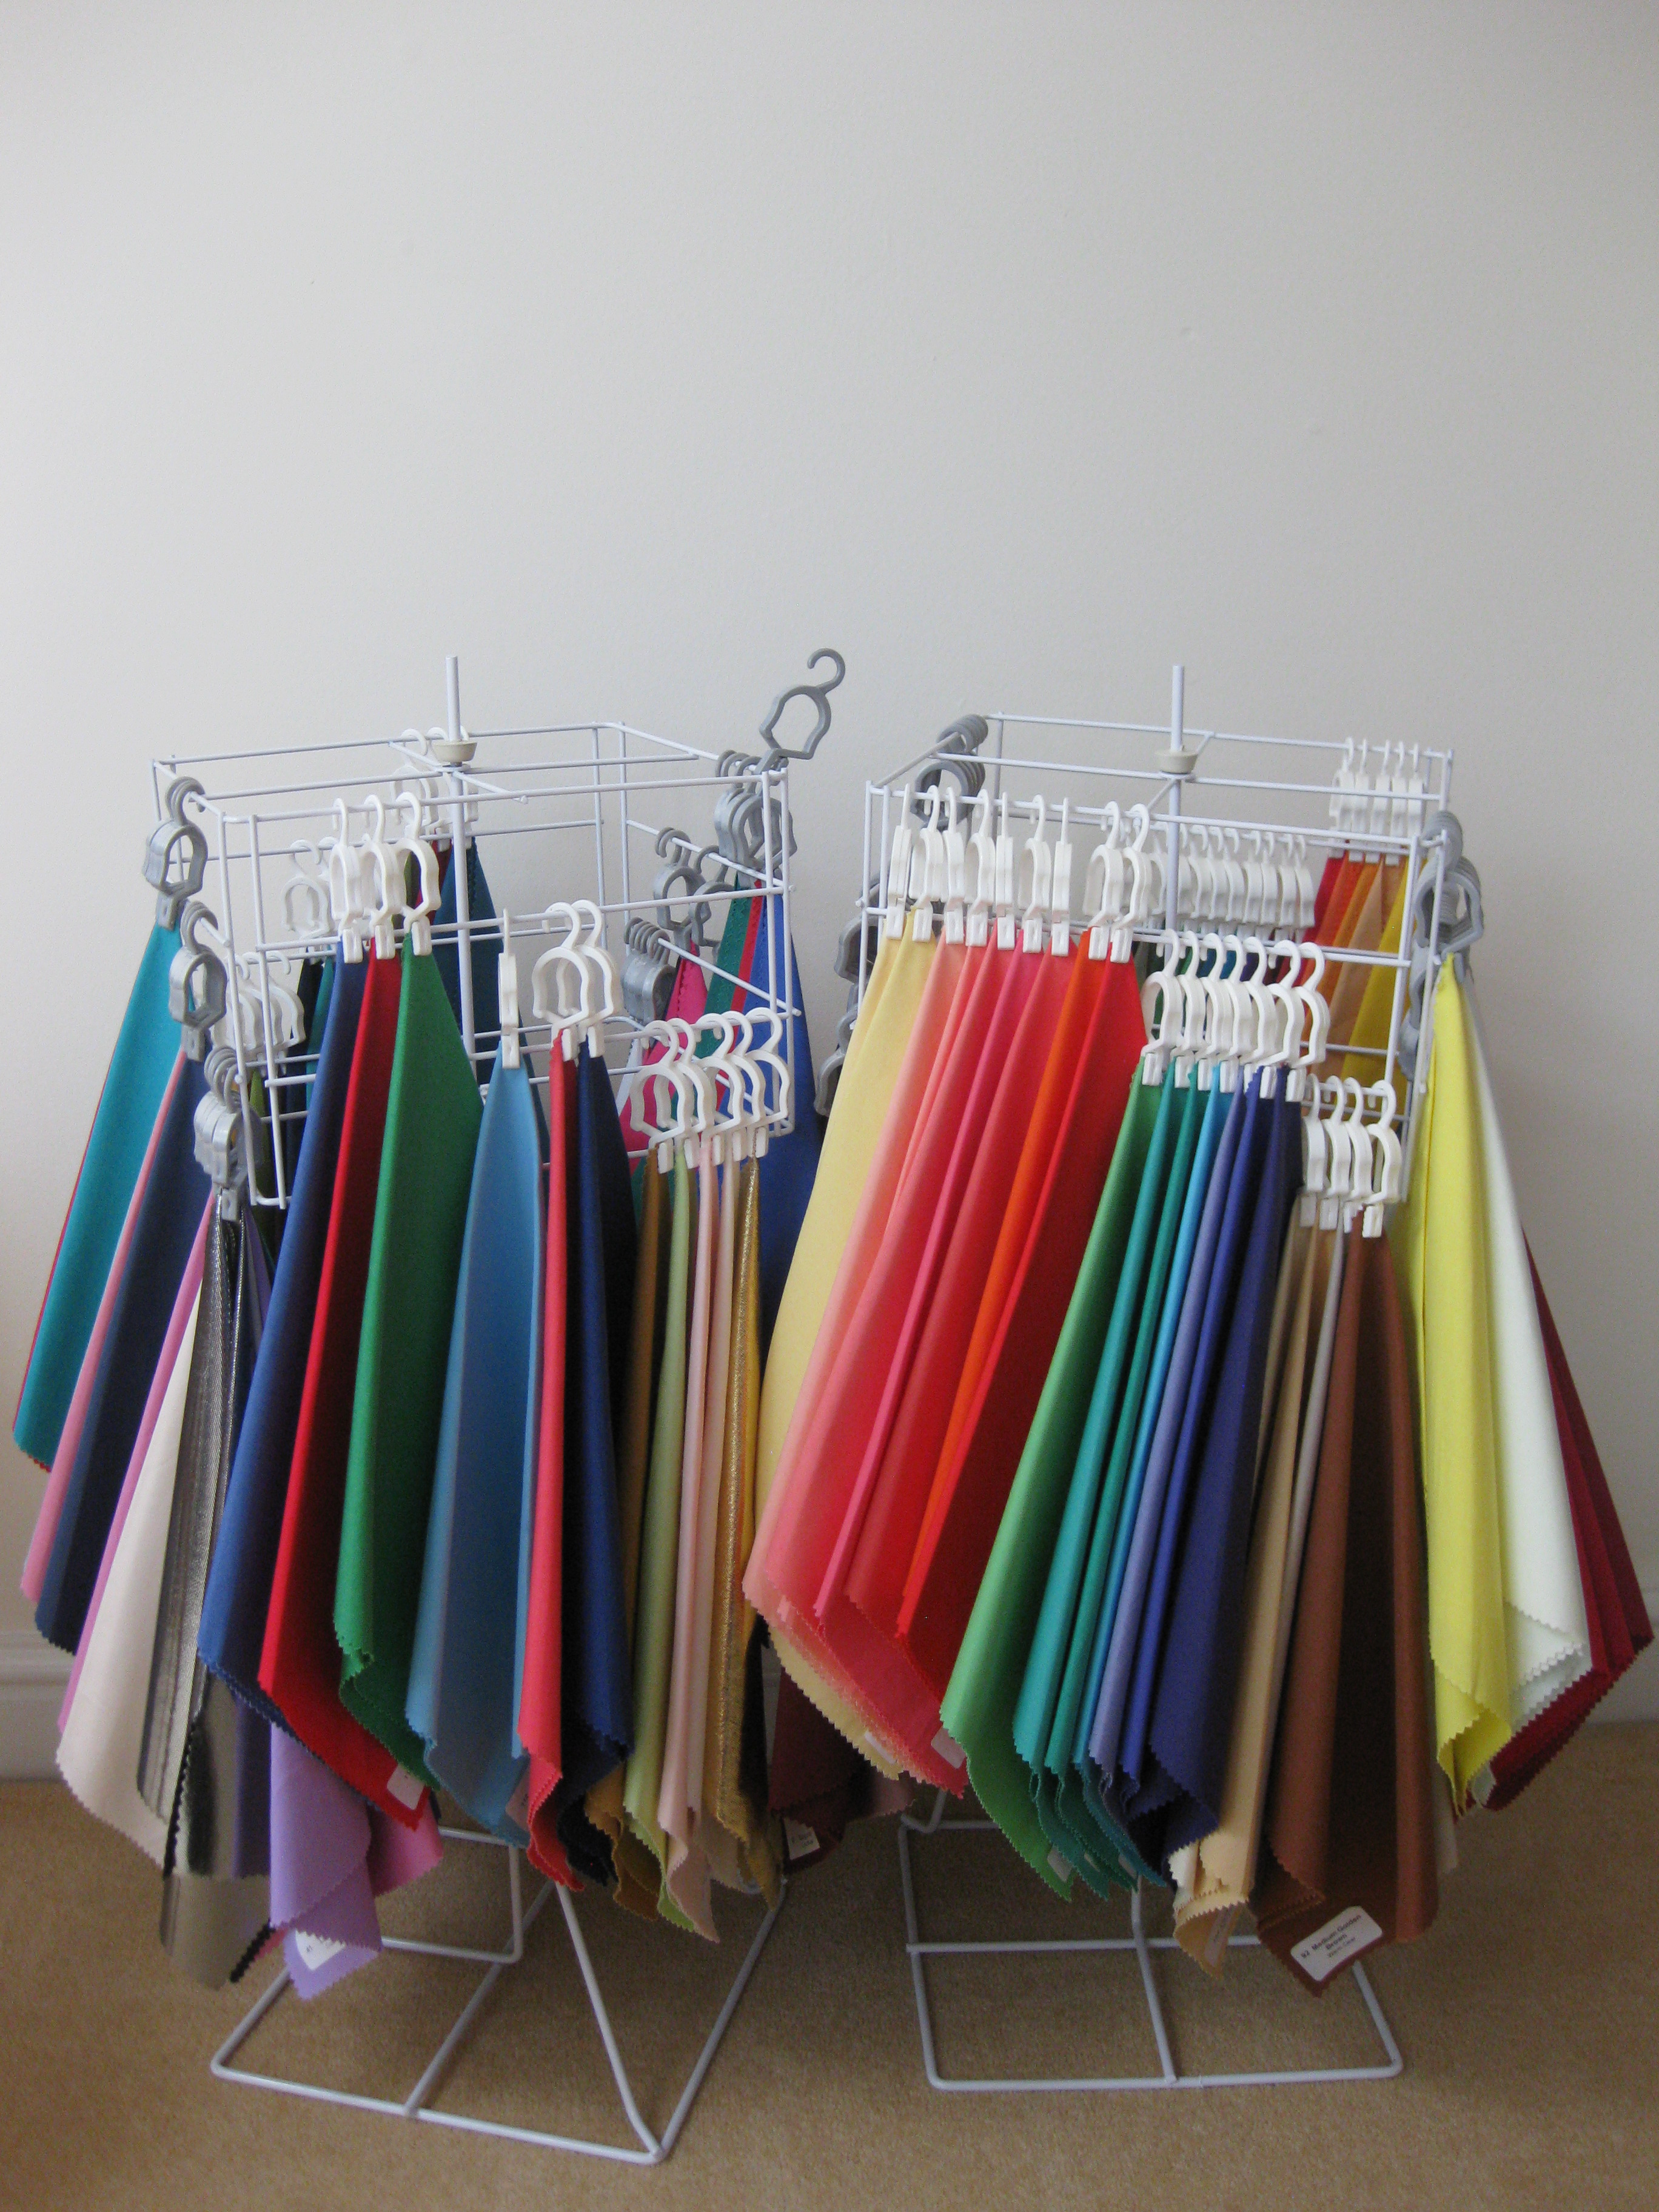 Main Image Colour Drapes